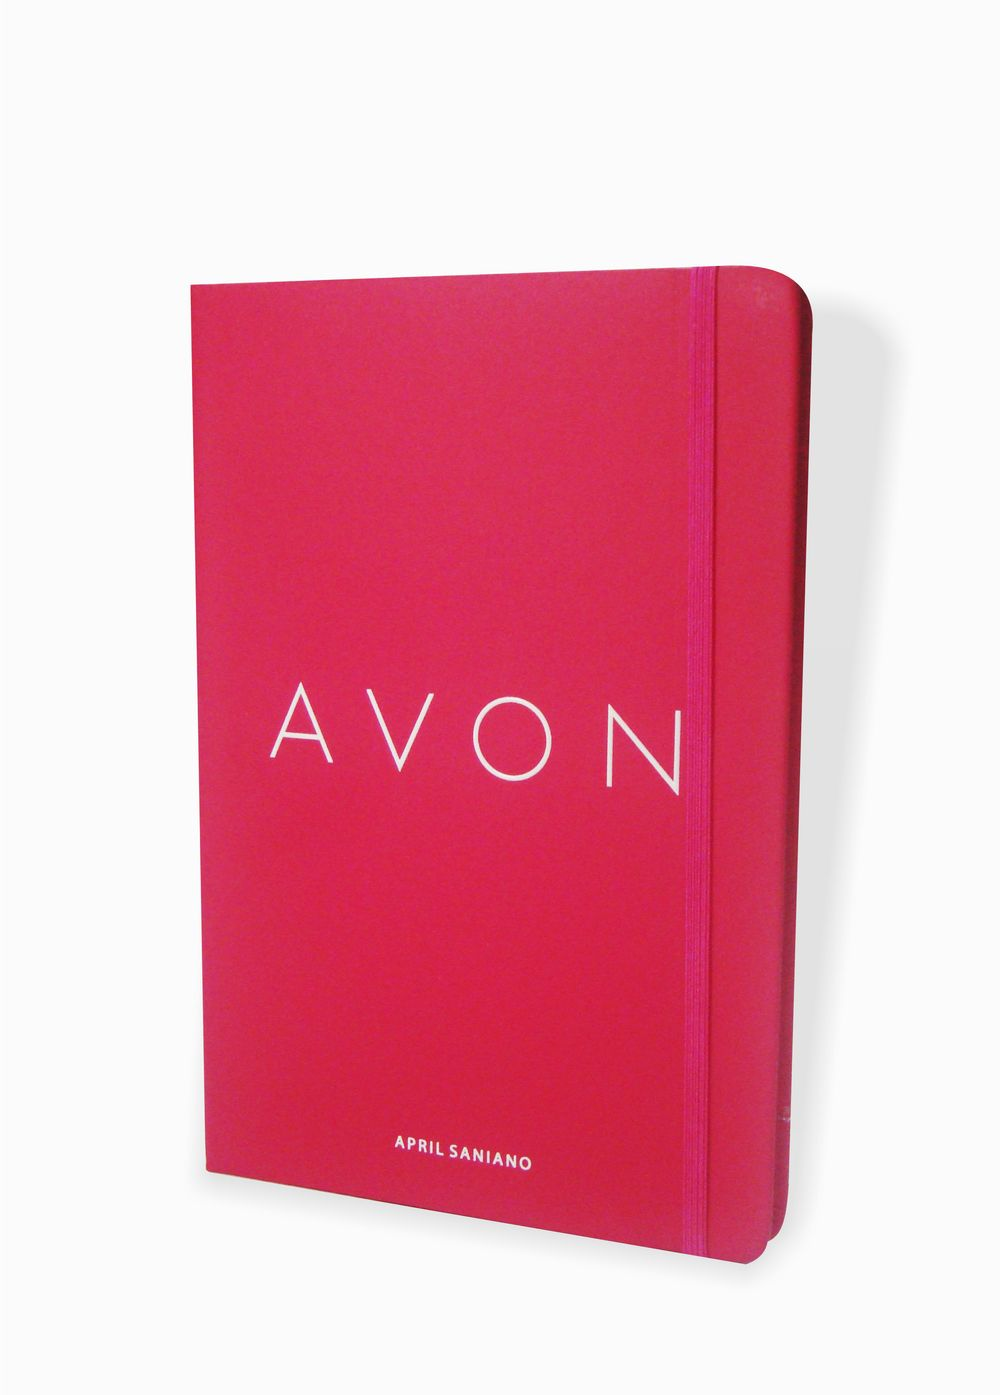 AVON NOTEBOOK 3.jpg